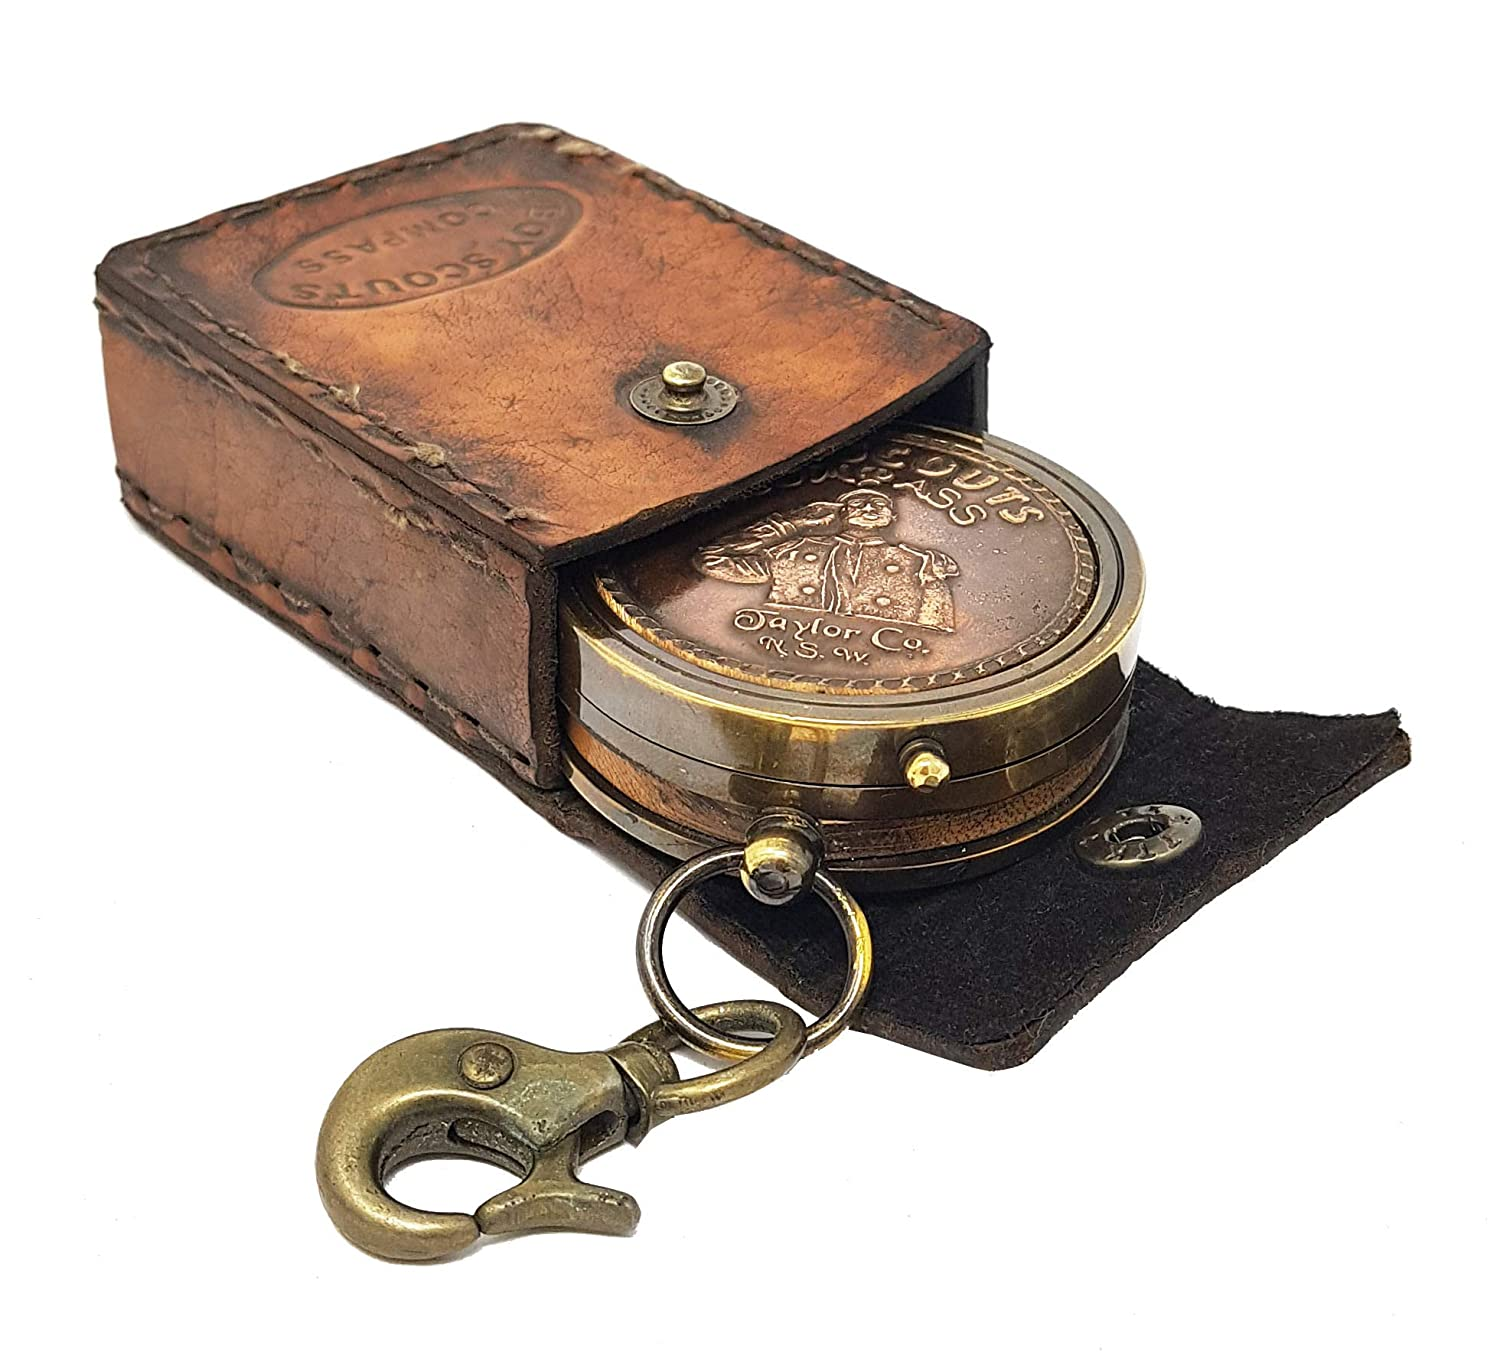 in Leather case Emergency and Outdoor Survival Camping for Hiking American Boy Scout Compass W//Scout Oath Brass Nautical Backpacking